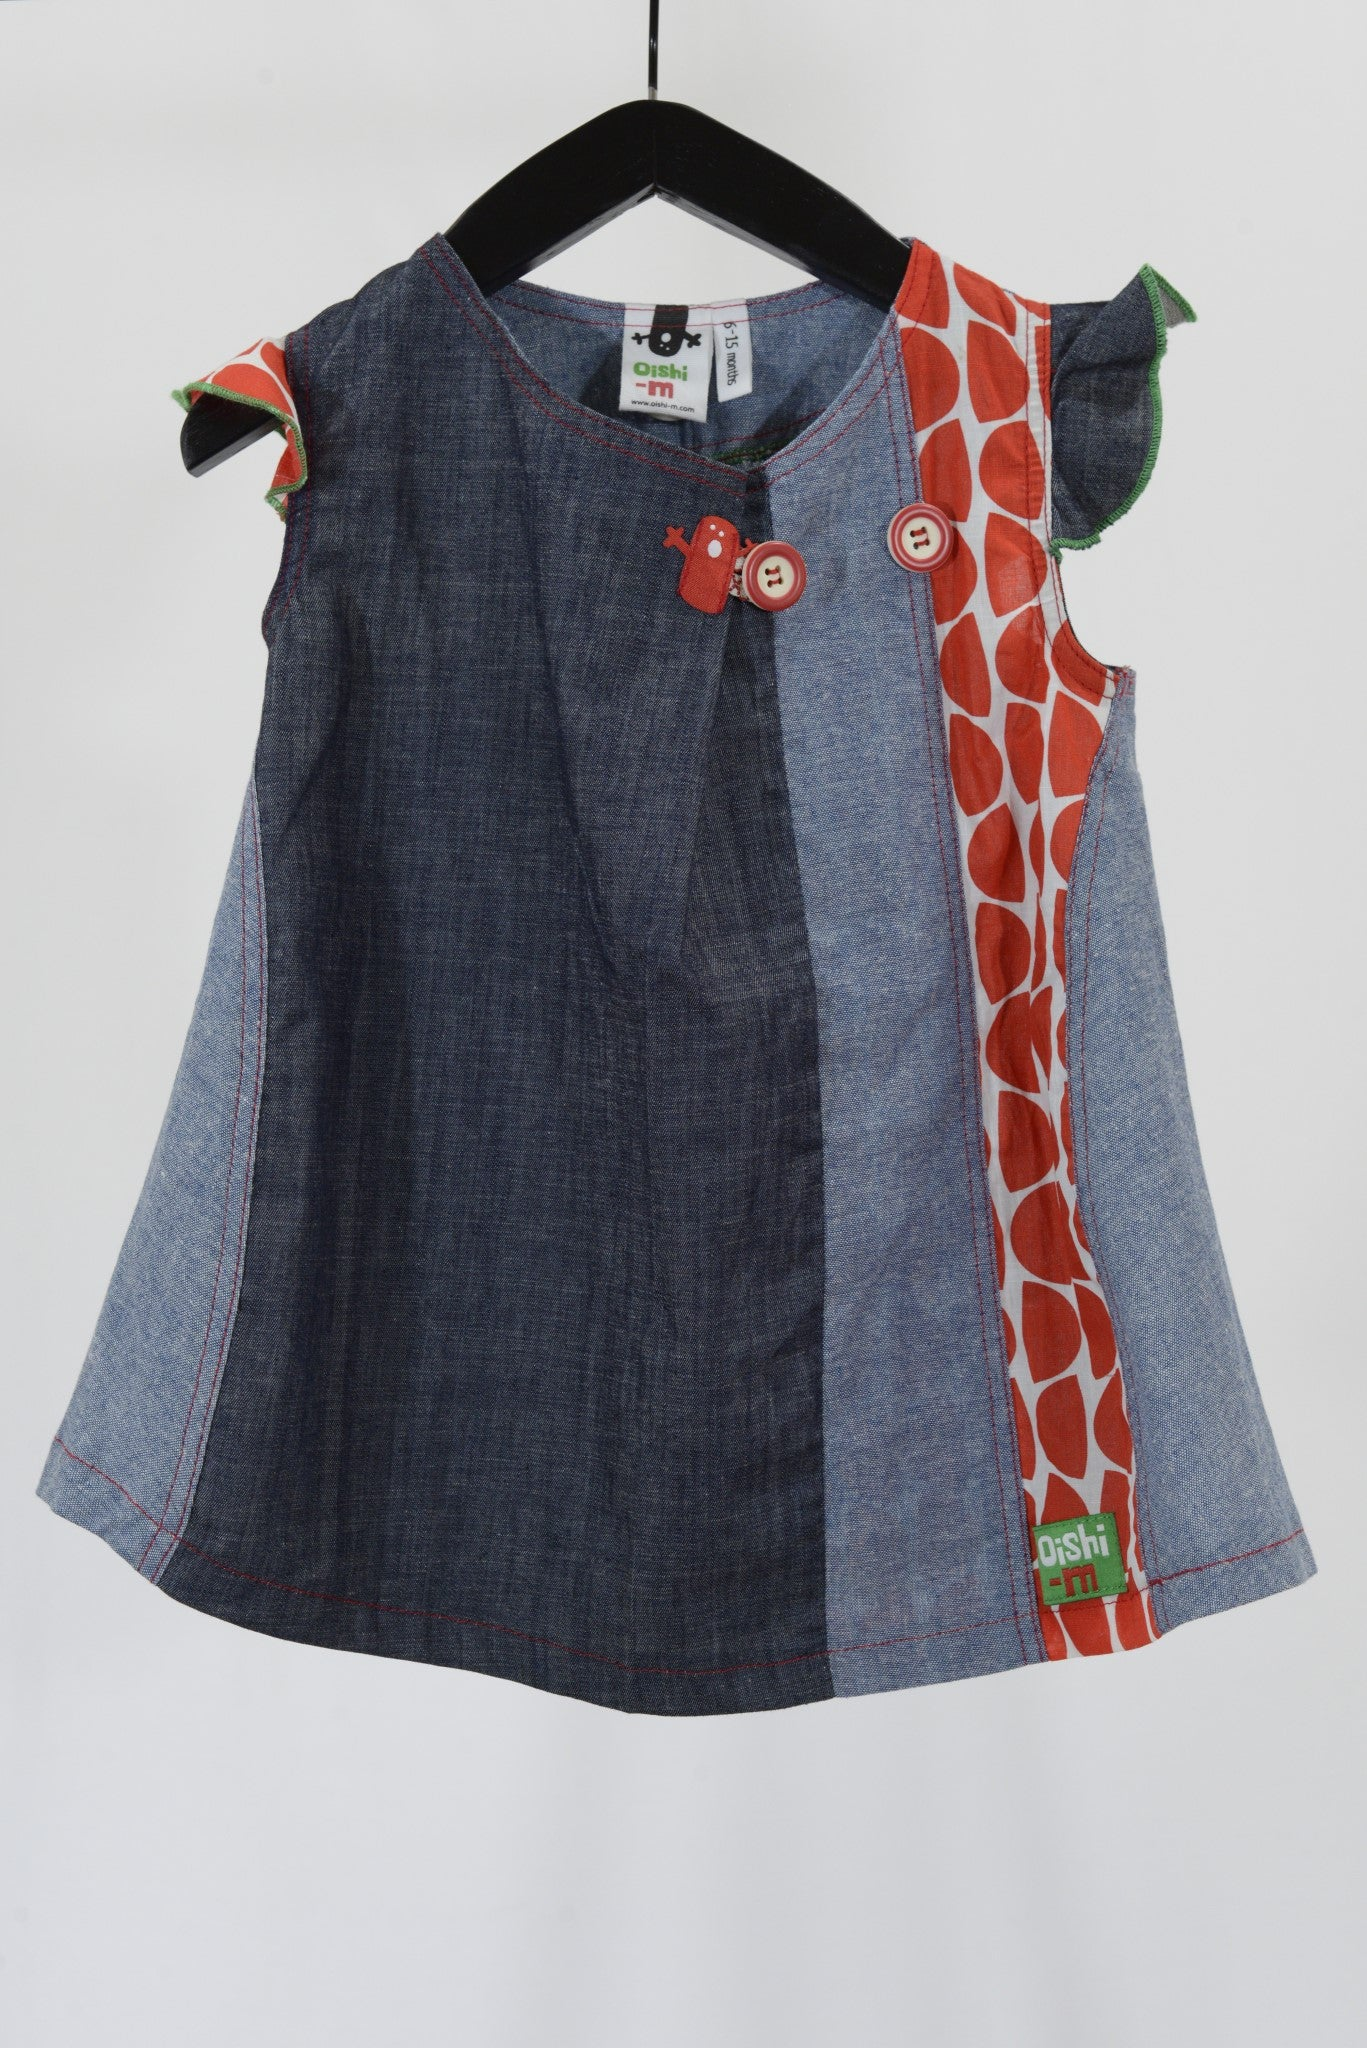 Oishi-m baby dress, denim blue and red.